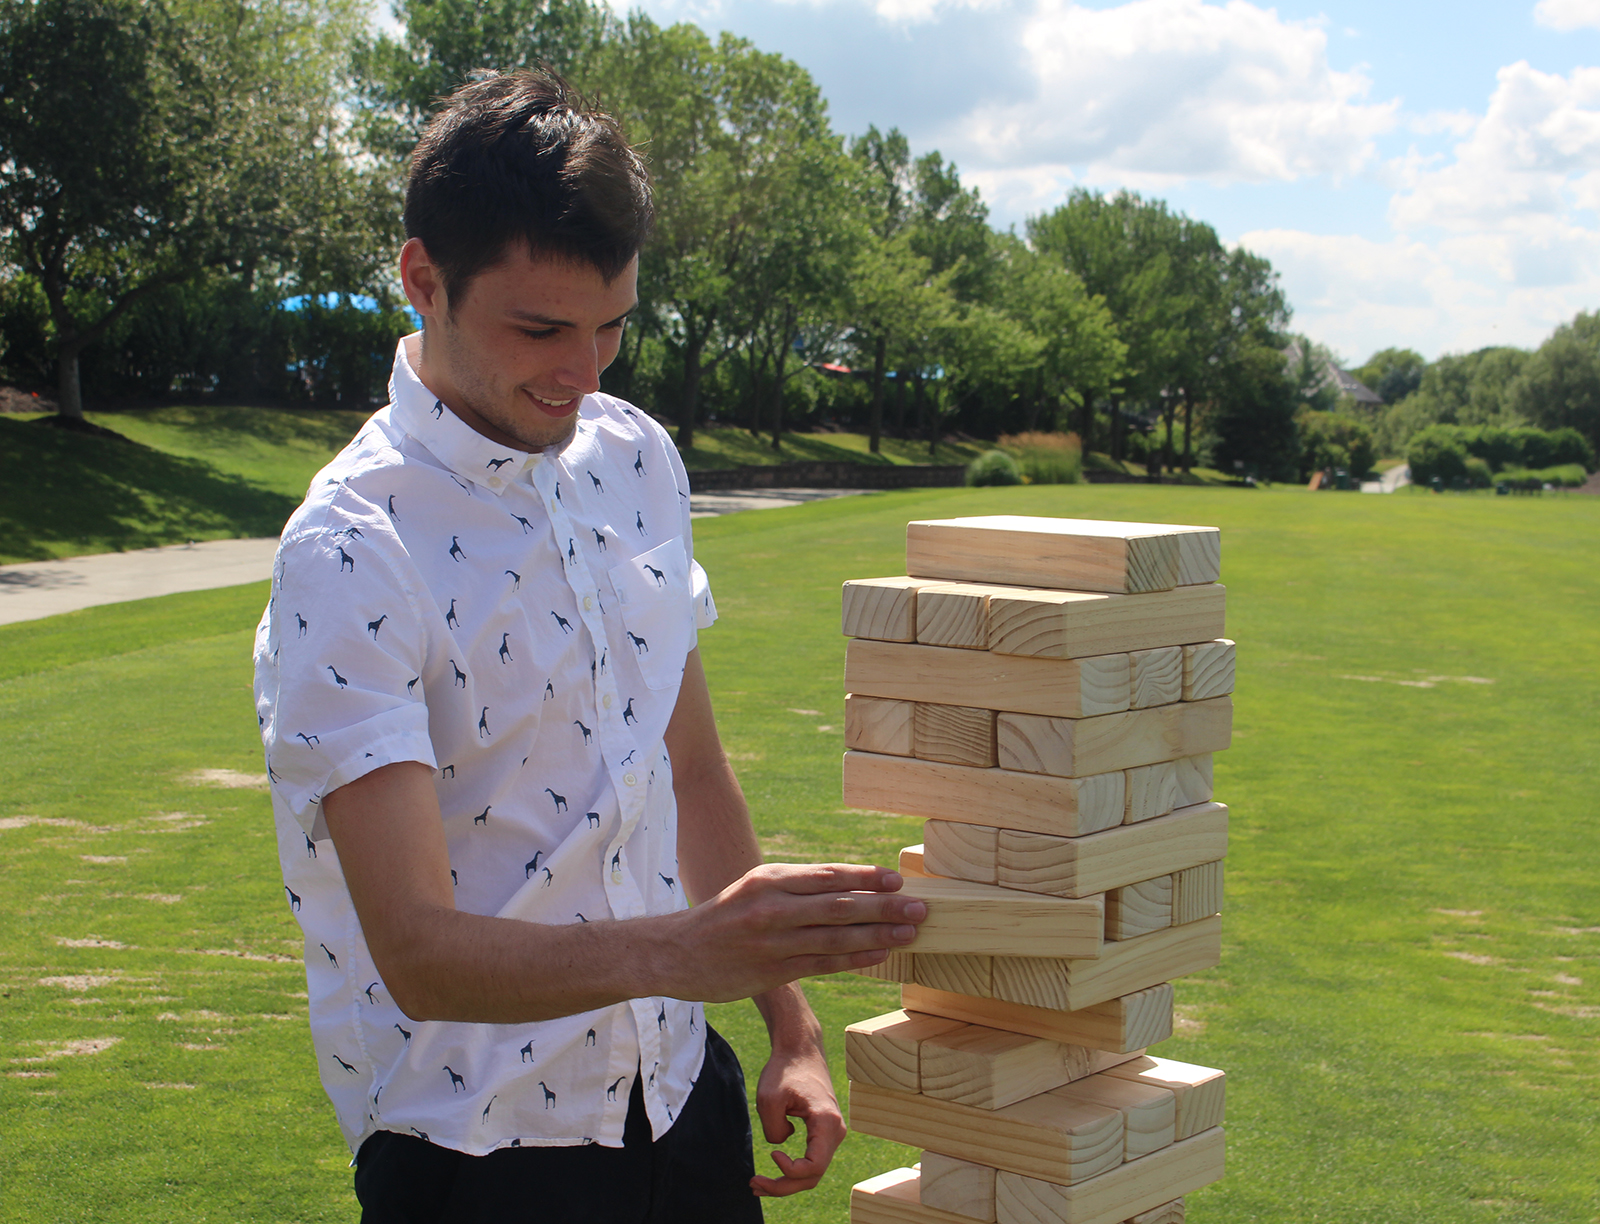 Connor Christensen of Warren Distribution pulls a brick from an outdoor Jenga set during the field games competition at the Omaha Bar Association Field Day last Monday at Champions Run. (Photo by Scott Stewart)